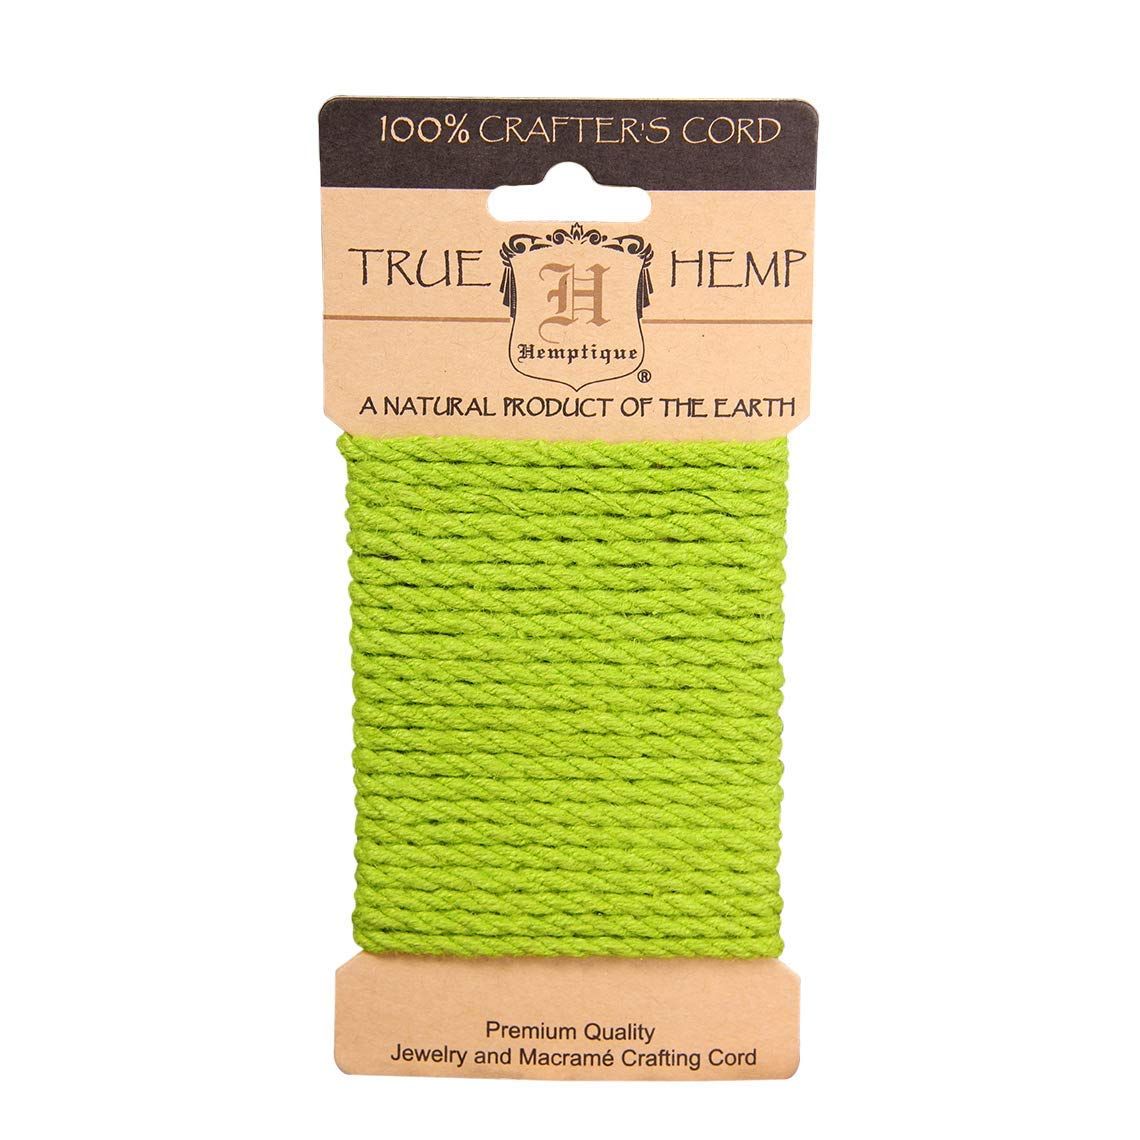 Hemptique Hemp Rope Card - Made with Love - Crafter's No. 1 Choice – Eco Friendly – Plant Hanger - Scrapbooking – Gardening – Macramé – Home Decor (Lime Green, 4mm)